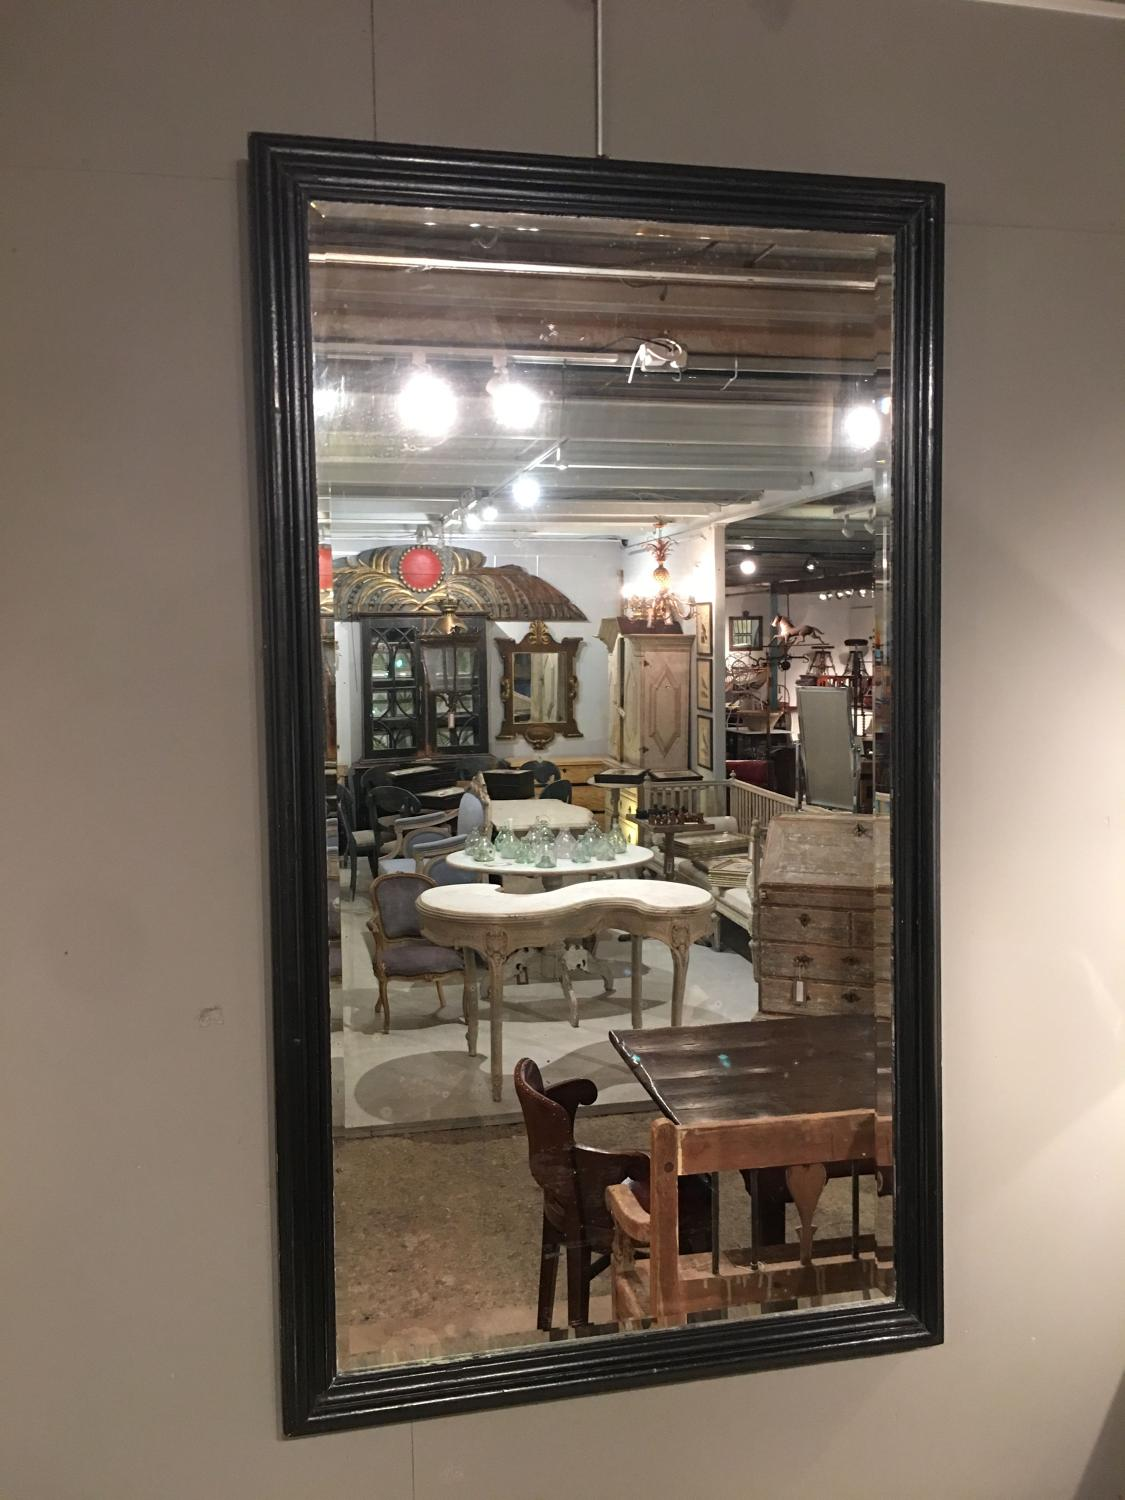 A pub/shop mirror